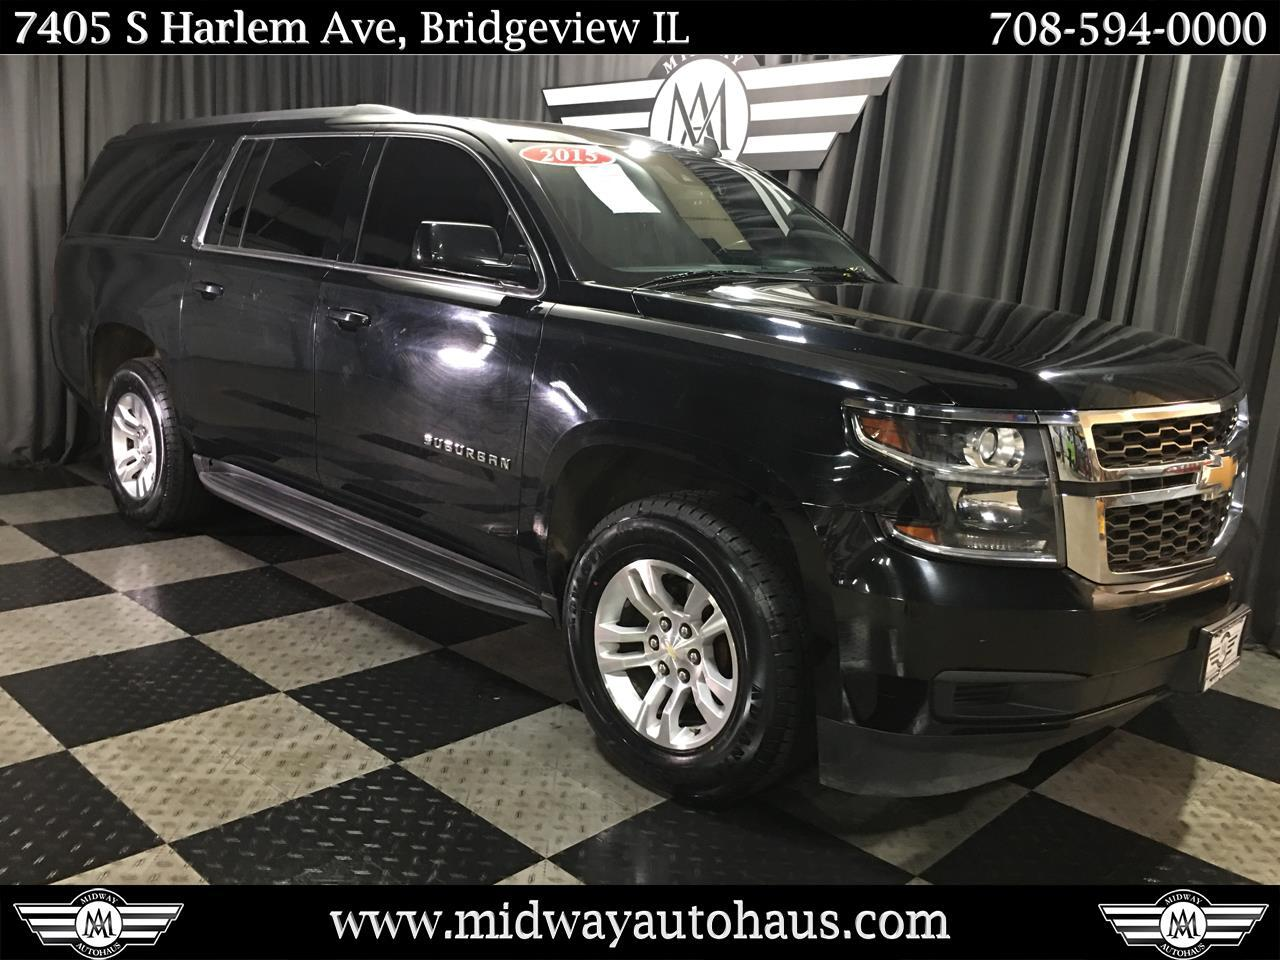 Pre-Owned 2015 Chevrolet Suburban 1500 4WD LT